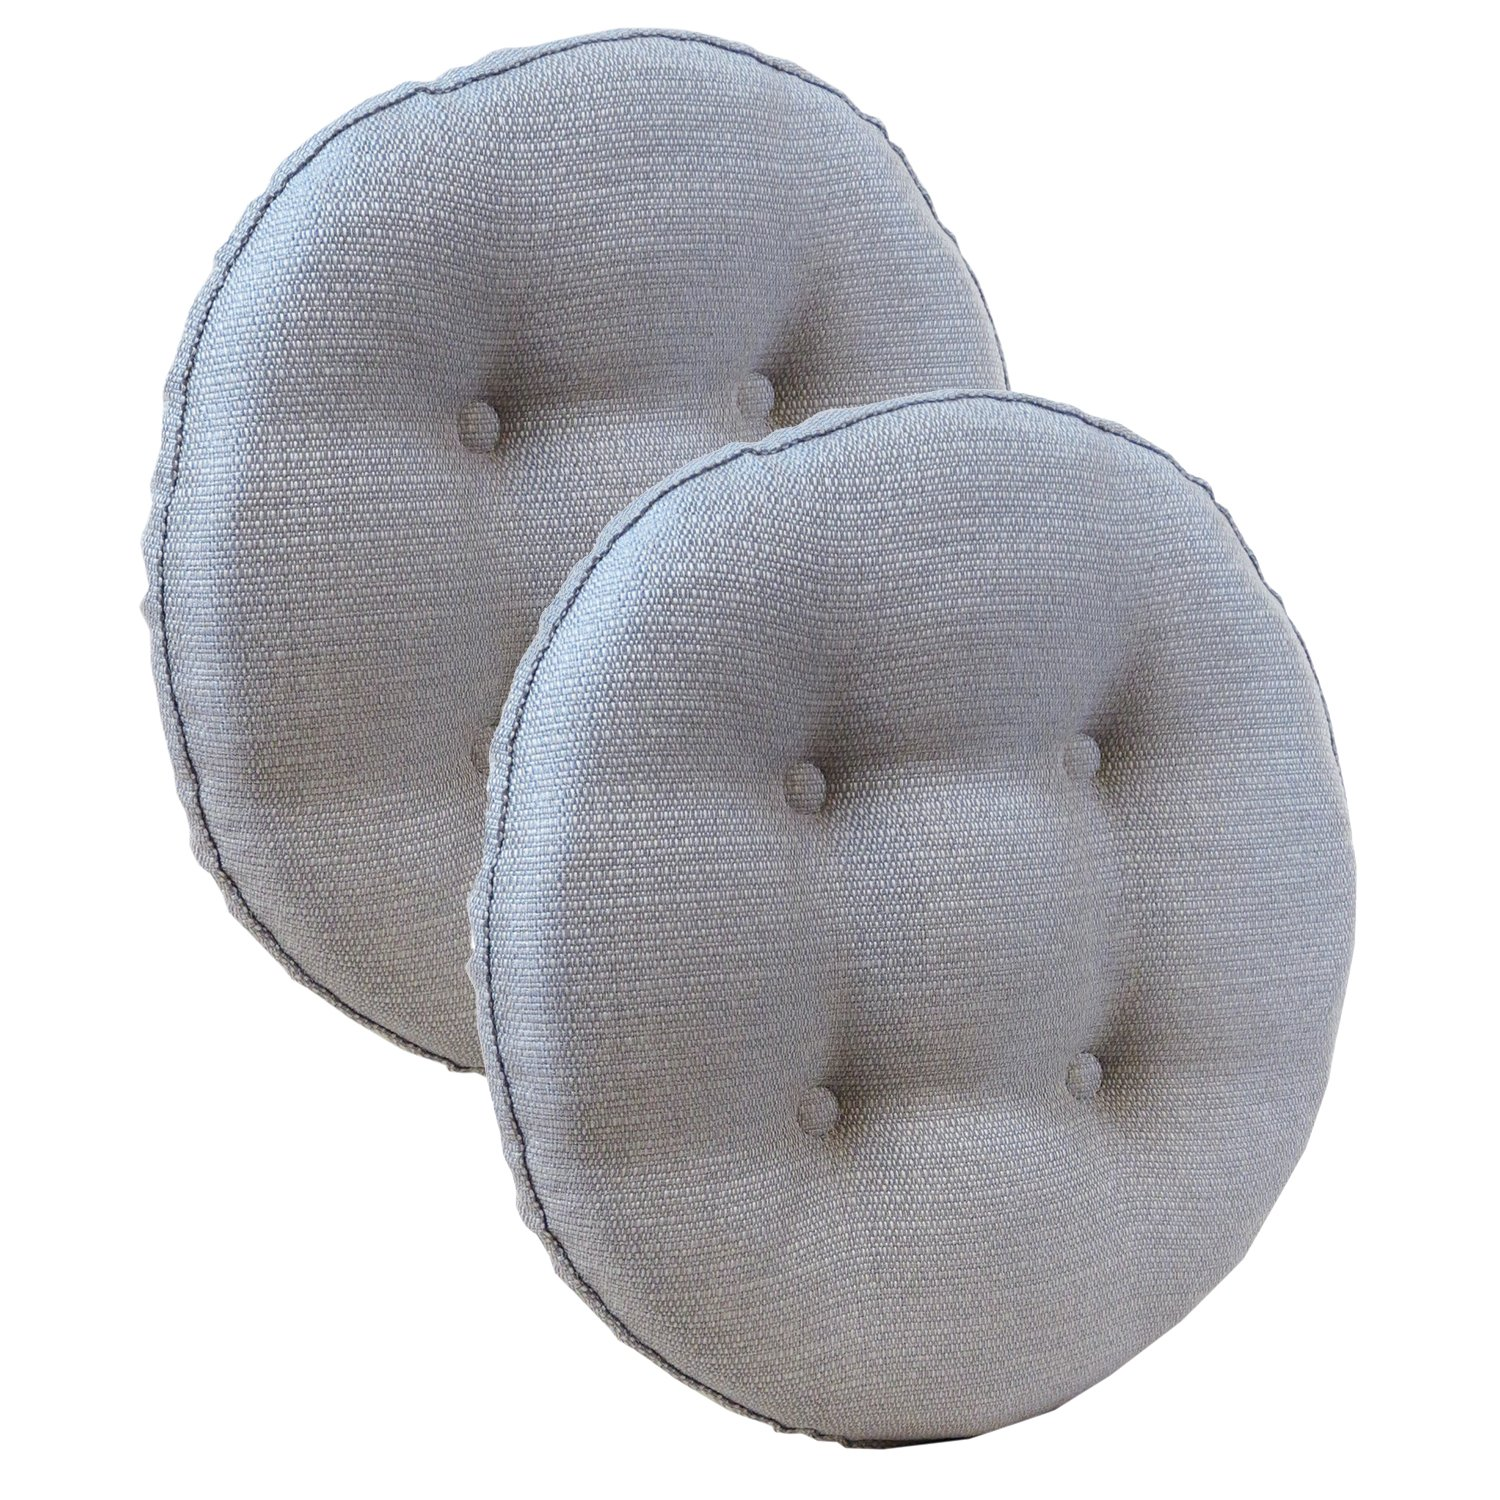 Klear Vu Omega Gripper Non-Stick Round Fabric Pads, 14'' x 14'', Set of 2 Barstool Cushions, Gray